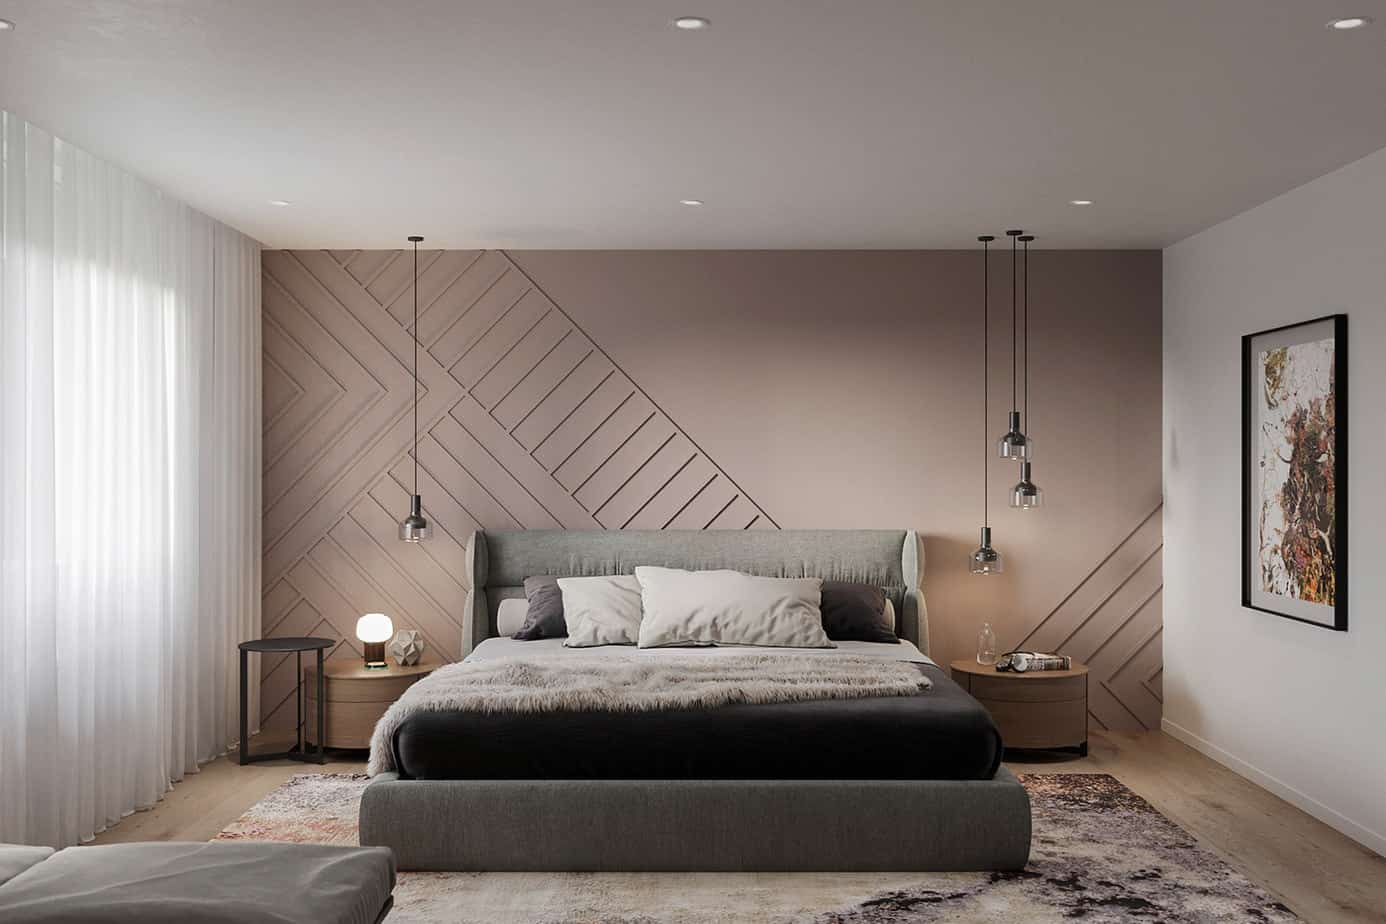 bedroom design 2021 above bed hanging pendants